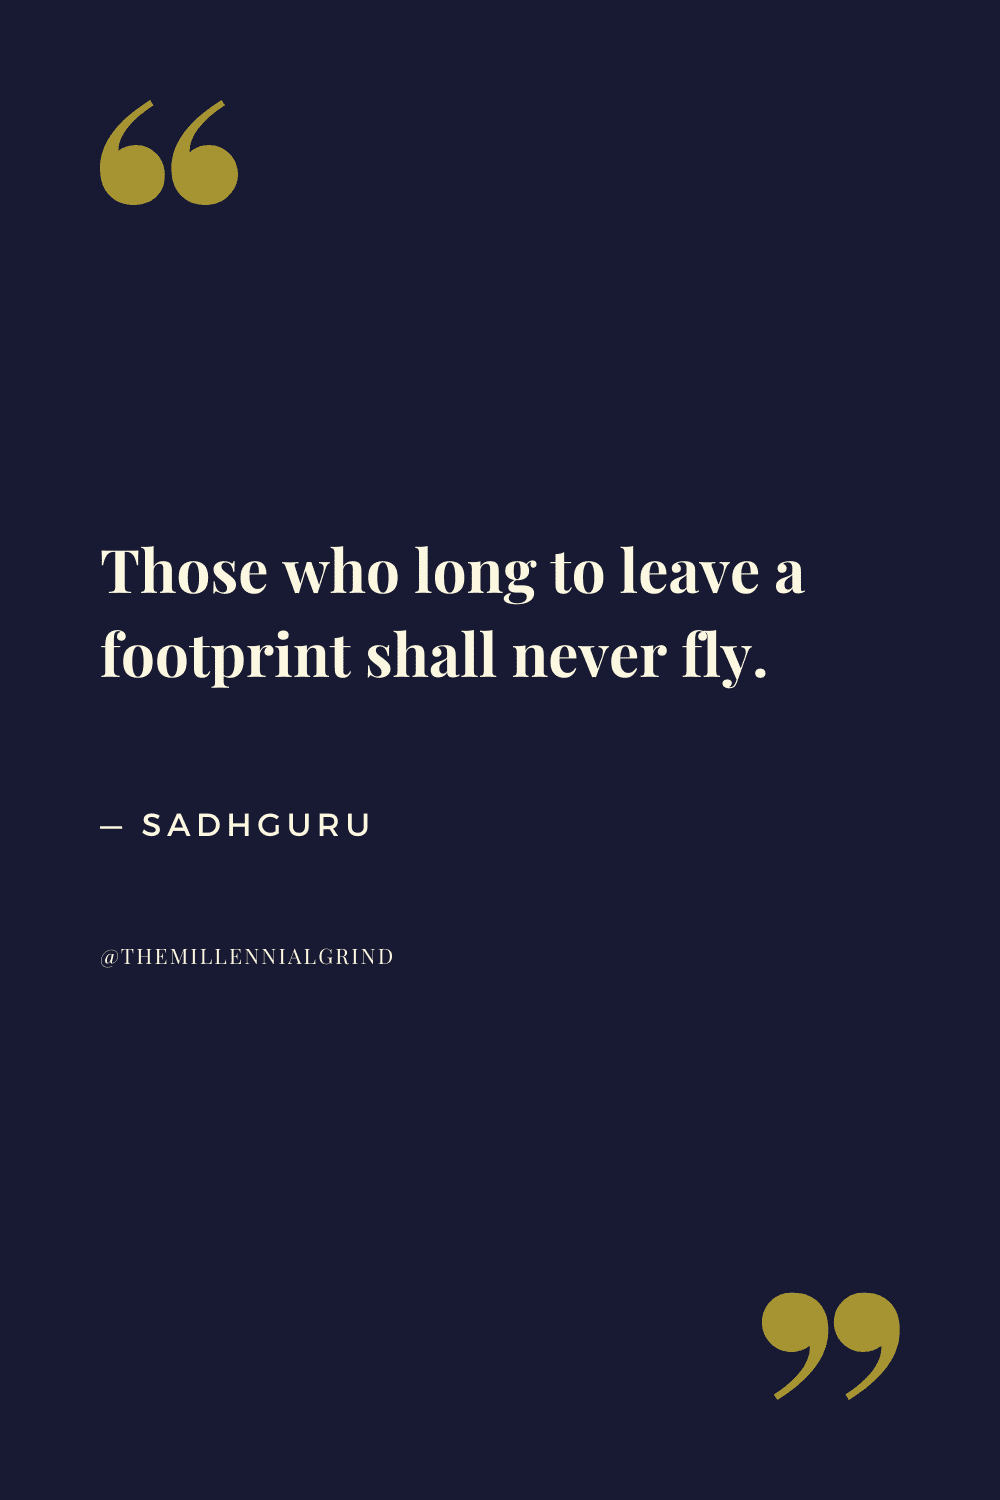 Those who long to leave a footprint shall never fly.